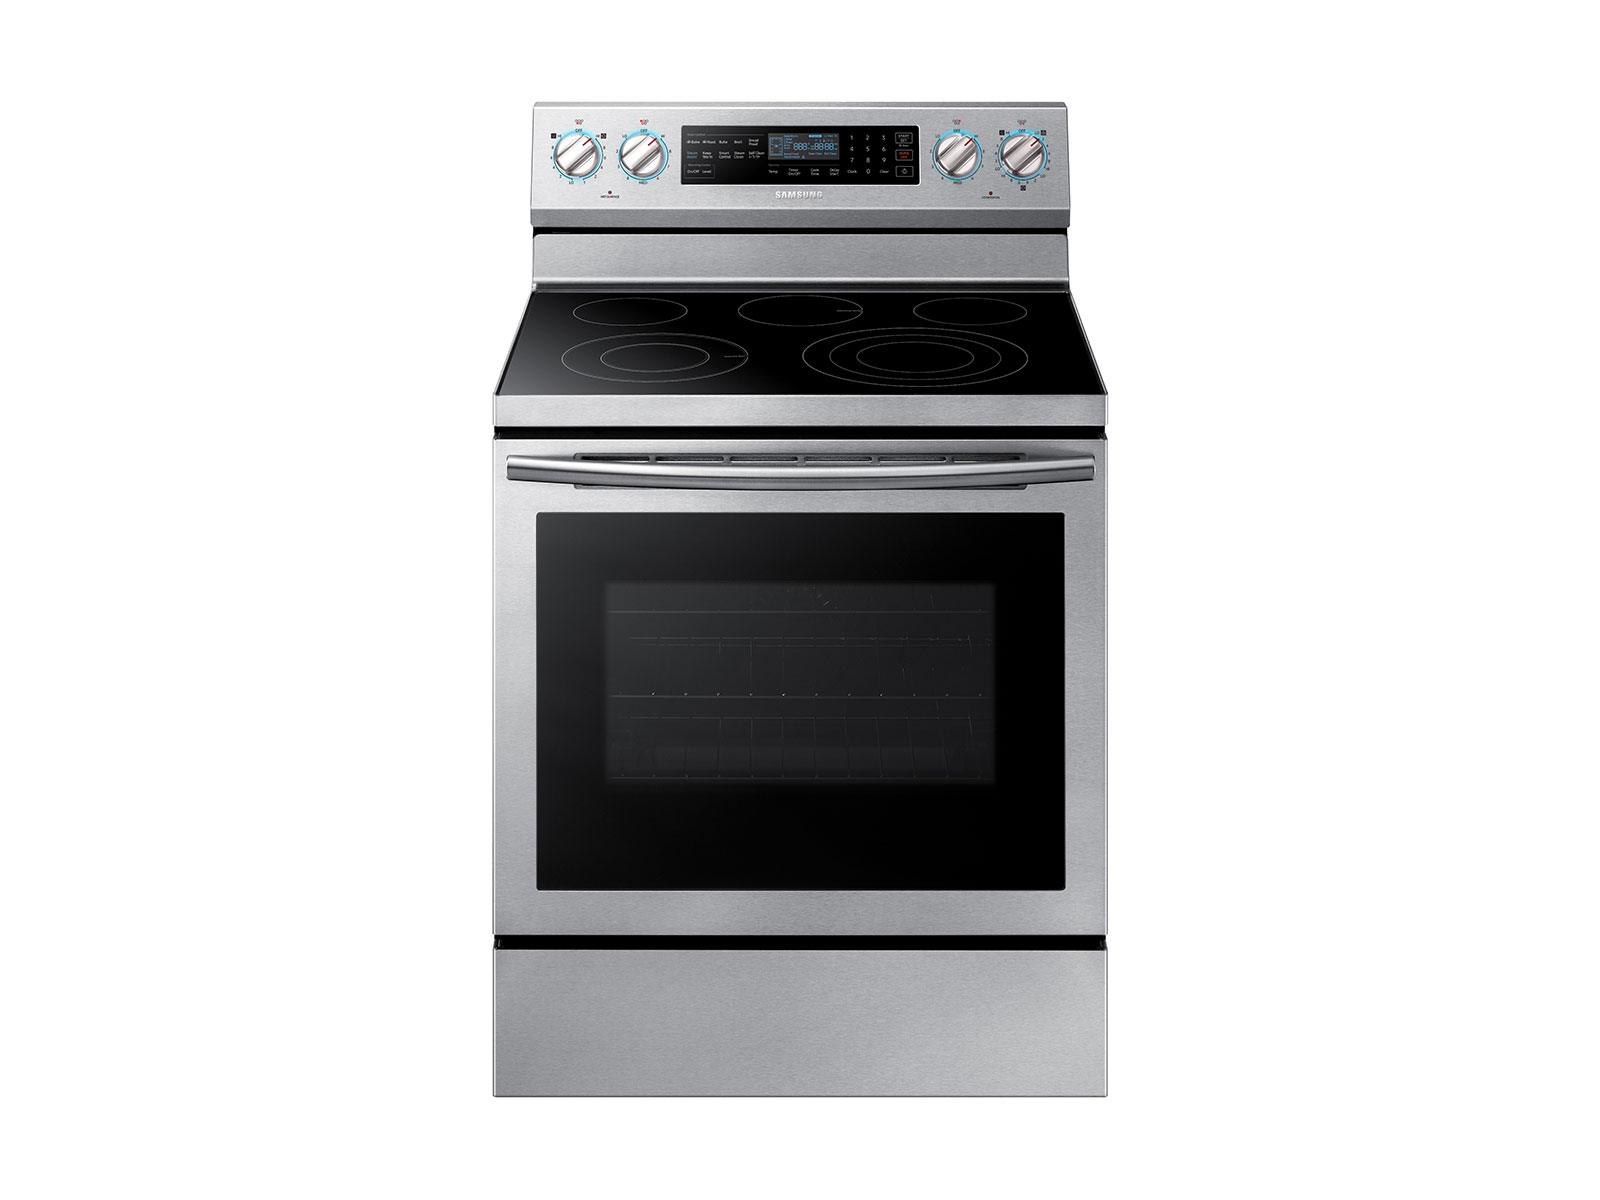 Samsung 5.9 cu. ft. Freestanding Electric Range with True Convection & Steam Assist in Stainless Steel, Silver